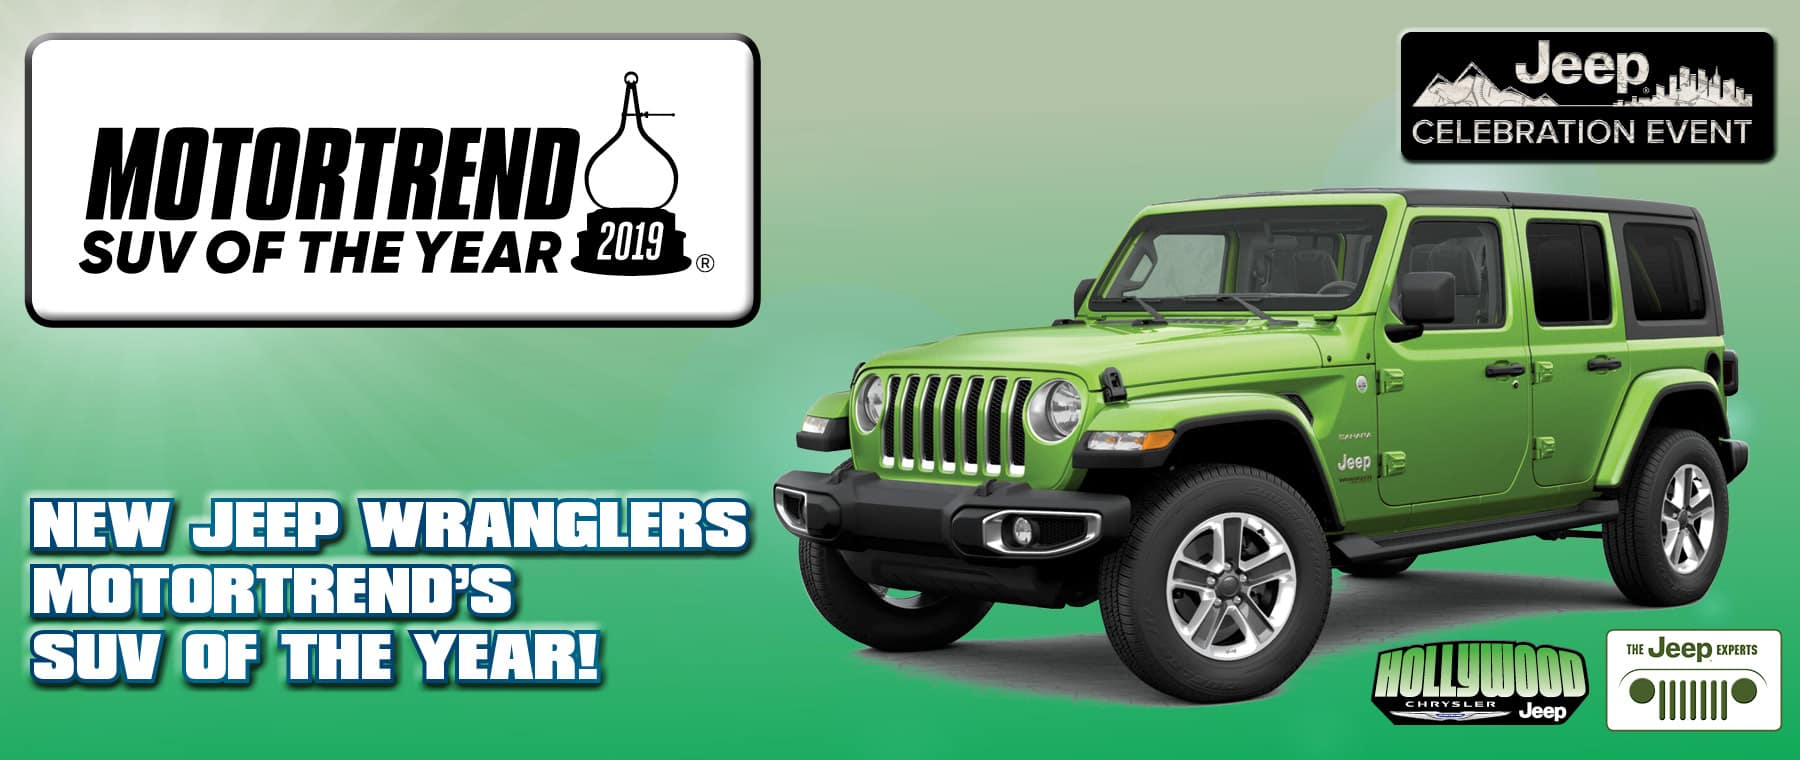 Jeep Motortrend TOY